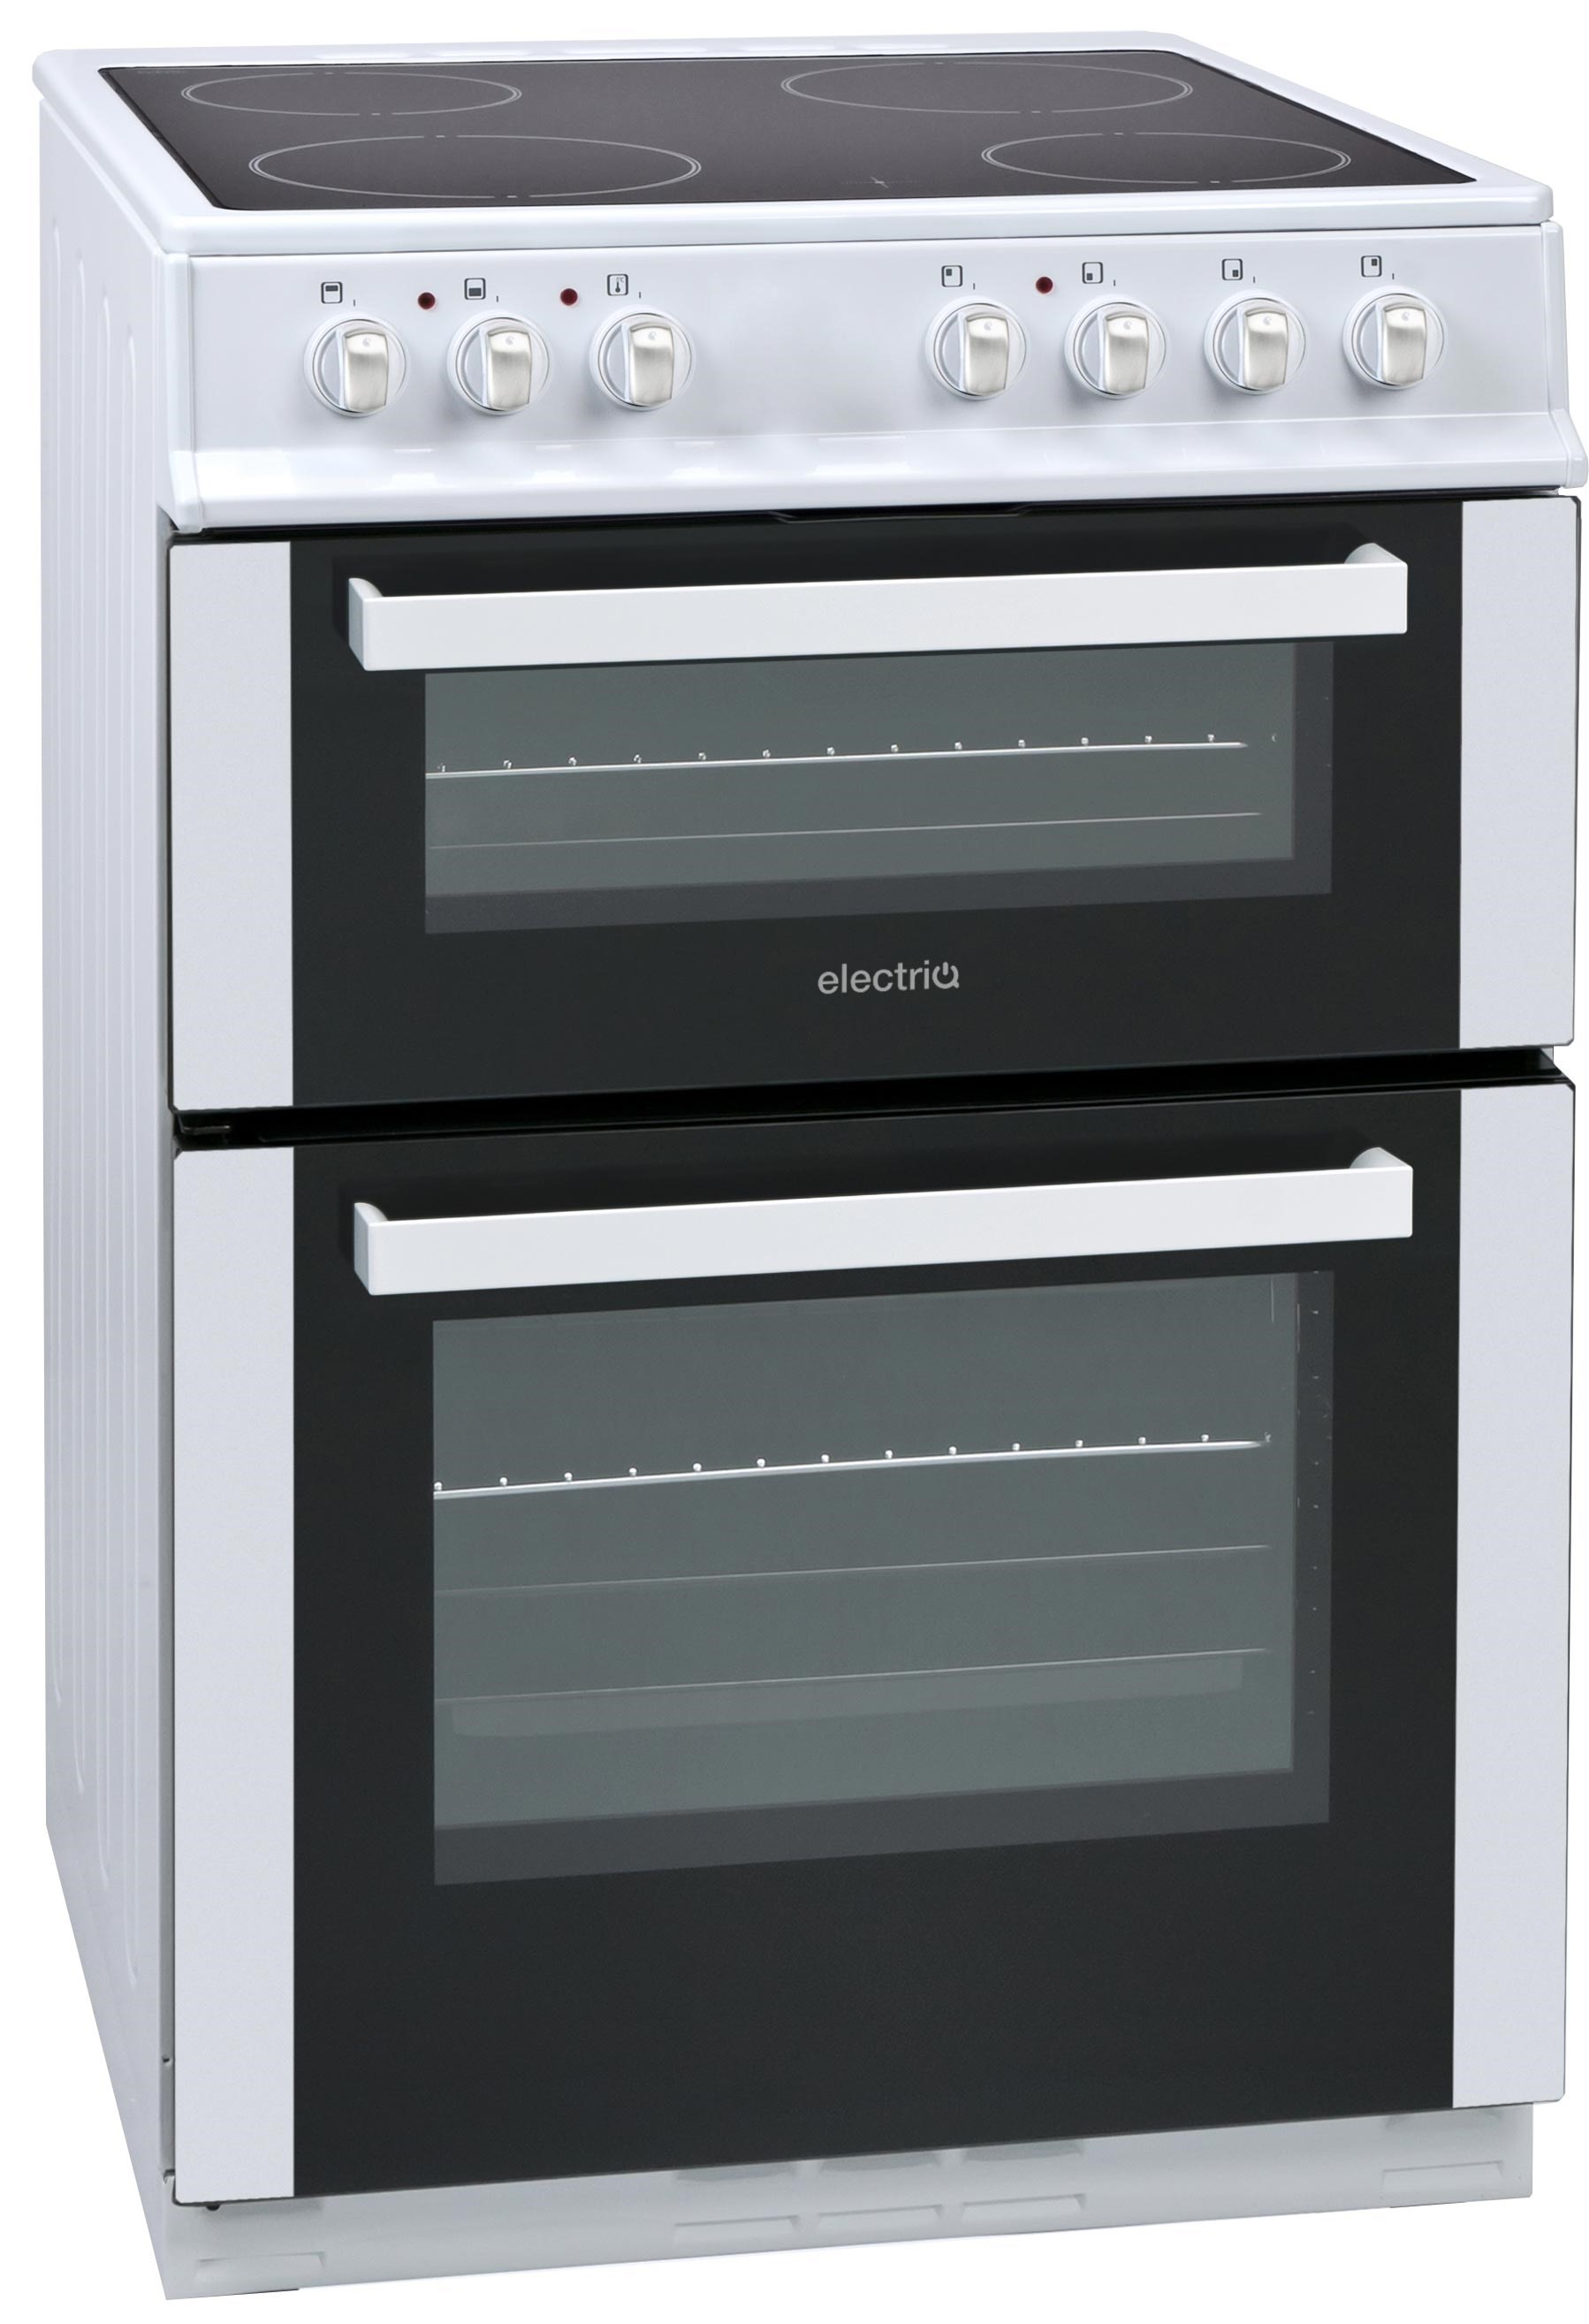 eqec5w60 white ceramic hob cooker